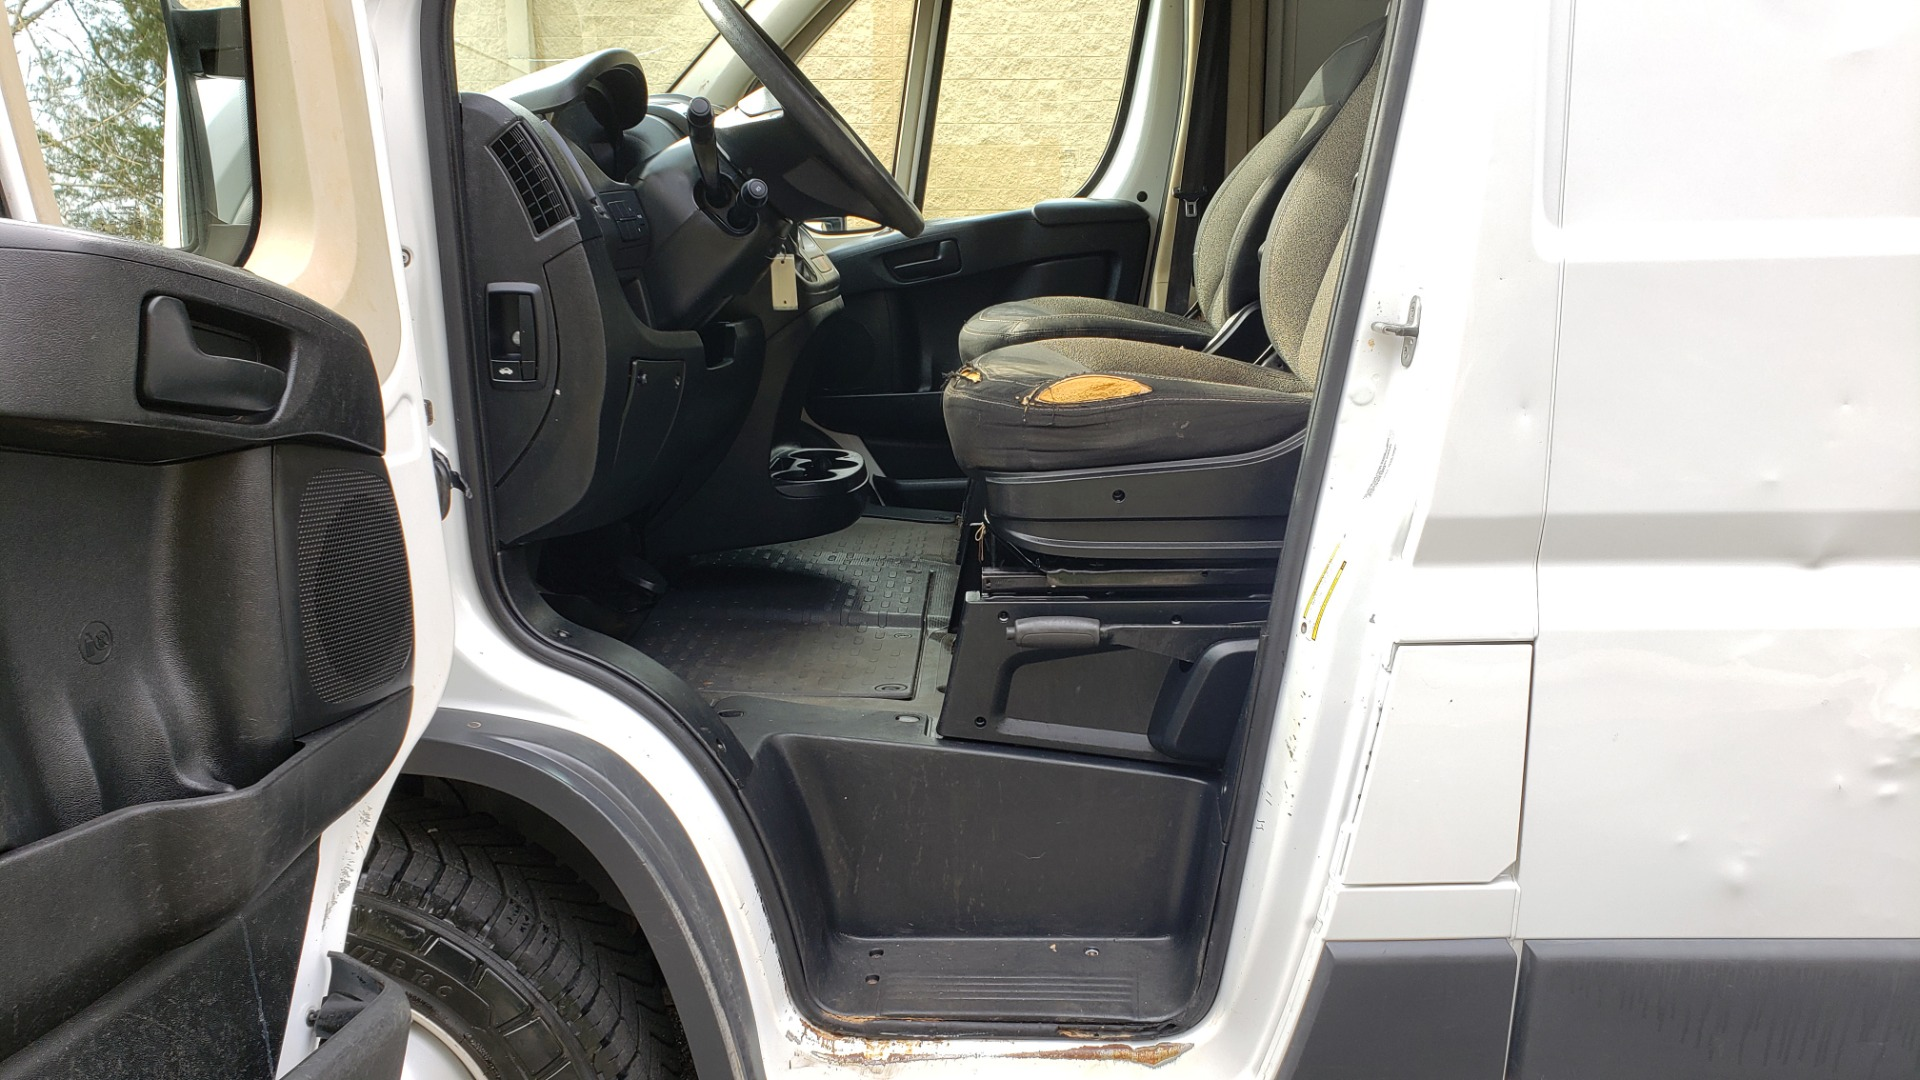 Used 2016 Ram PROMASTER CARGO VAN 136 WB / LOW ROOF / 3.6L V6 / 6-SPD AUTO / REARVIEW for sale $17,500 at Formula Imports in Charlotte NC 28227 24